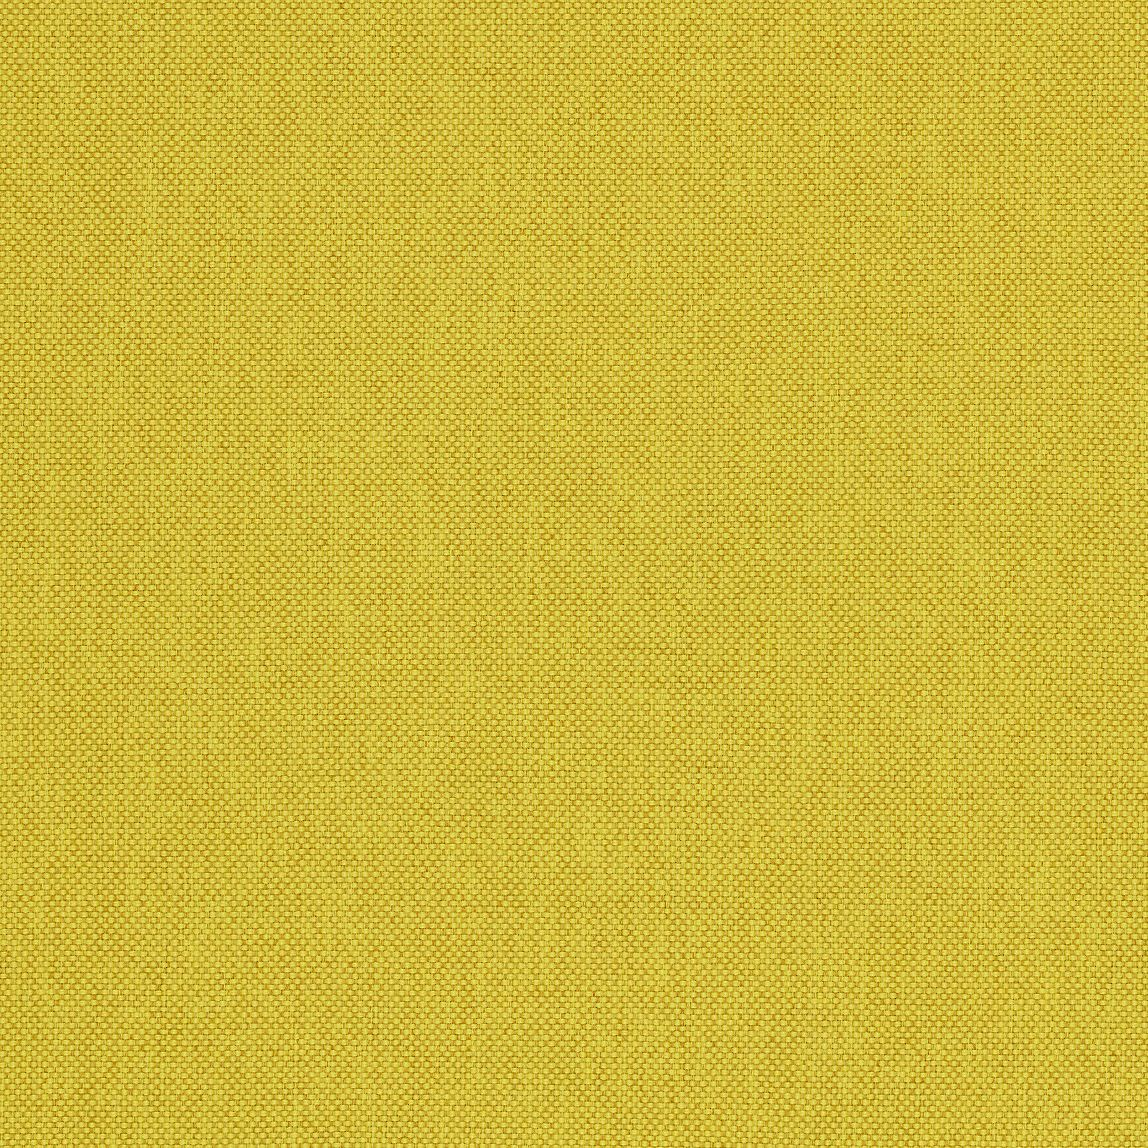 Mode Oxeye Swatch